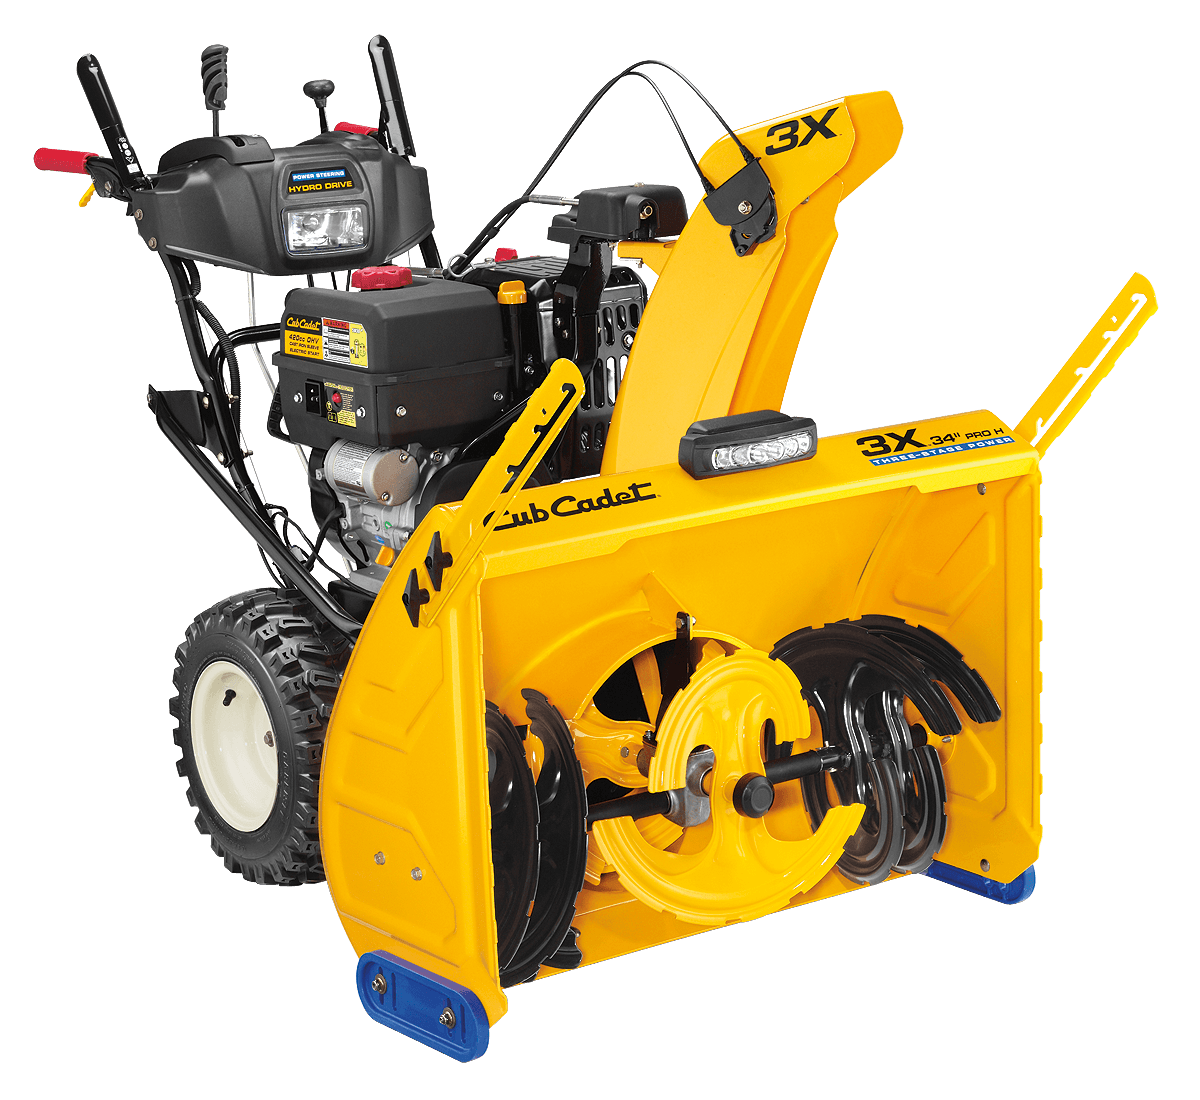 """Yellow Snow Blower >> New 2016 Cub Cadet 3X 34"""" PRO H Snowblowers in Lake Mills, IA 